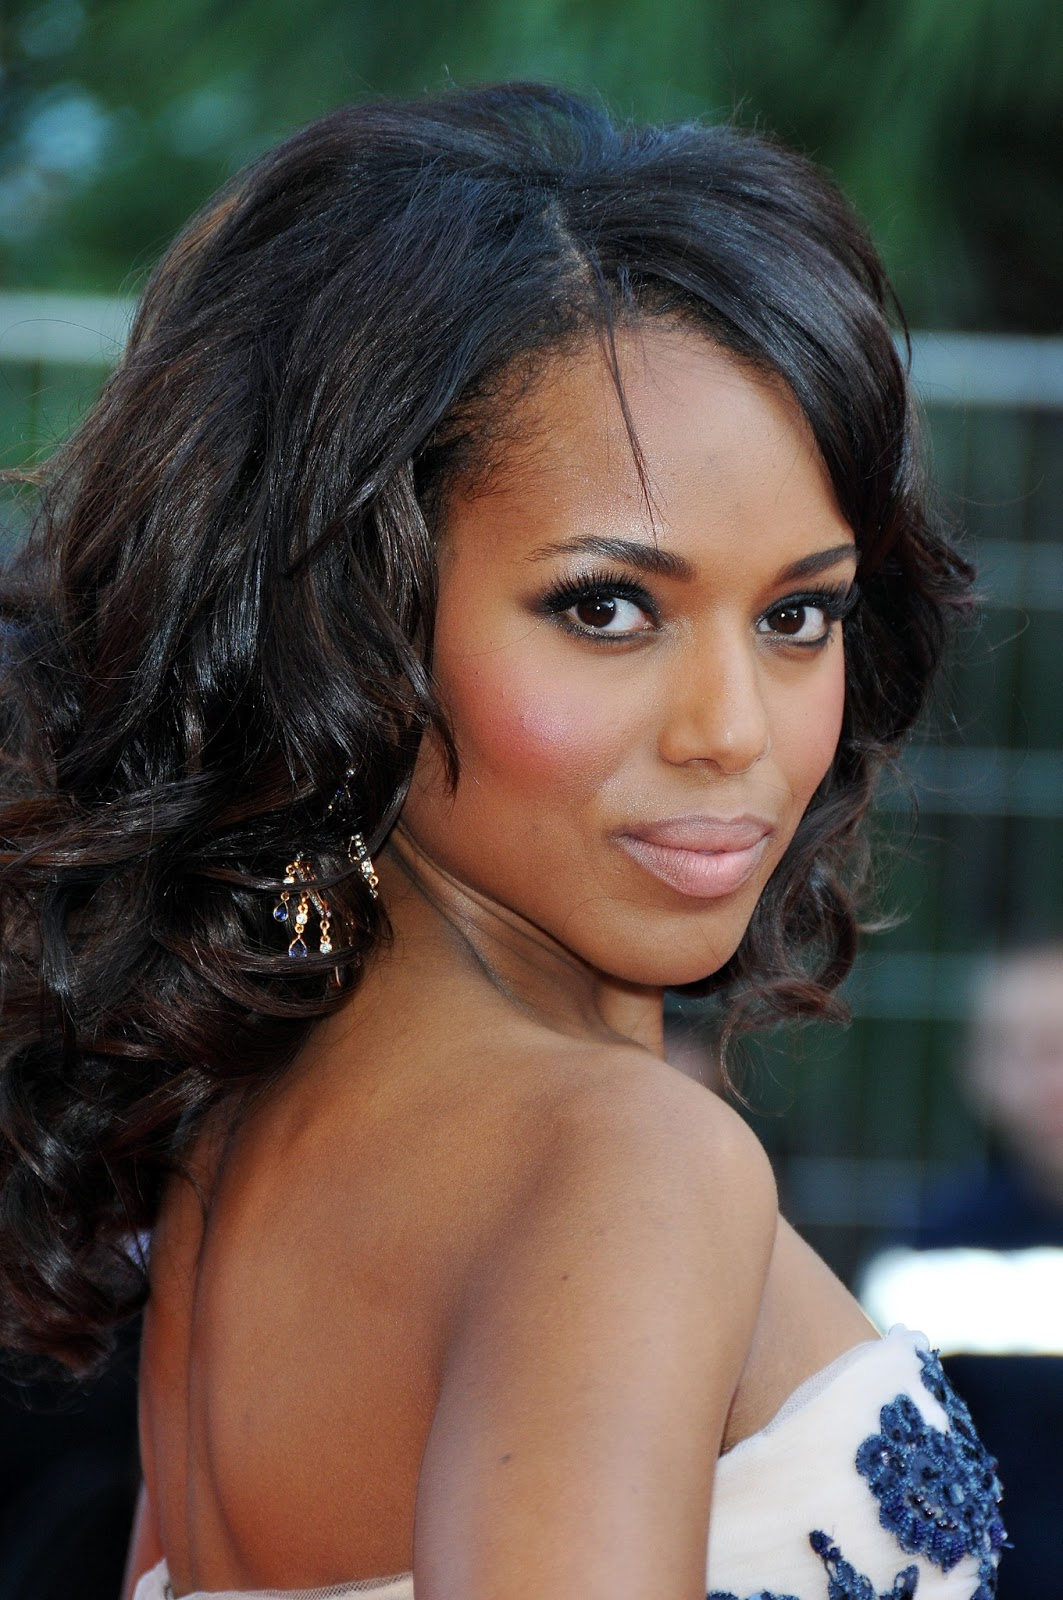 Kerry Washington Is One Hot Mama in a Sheer Mini at the